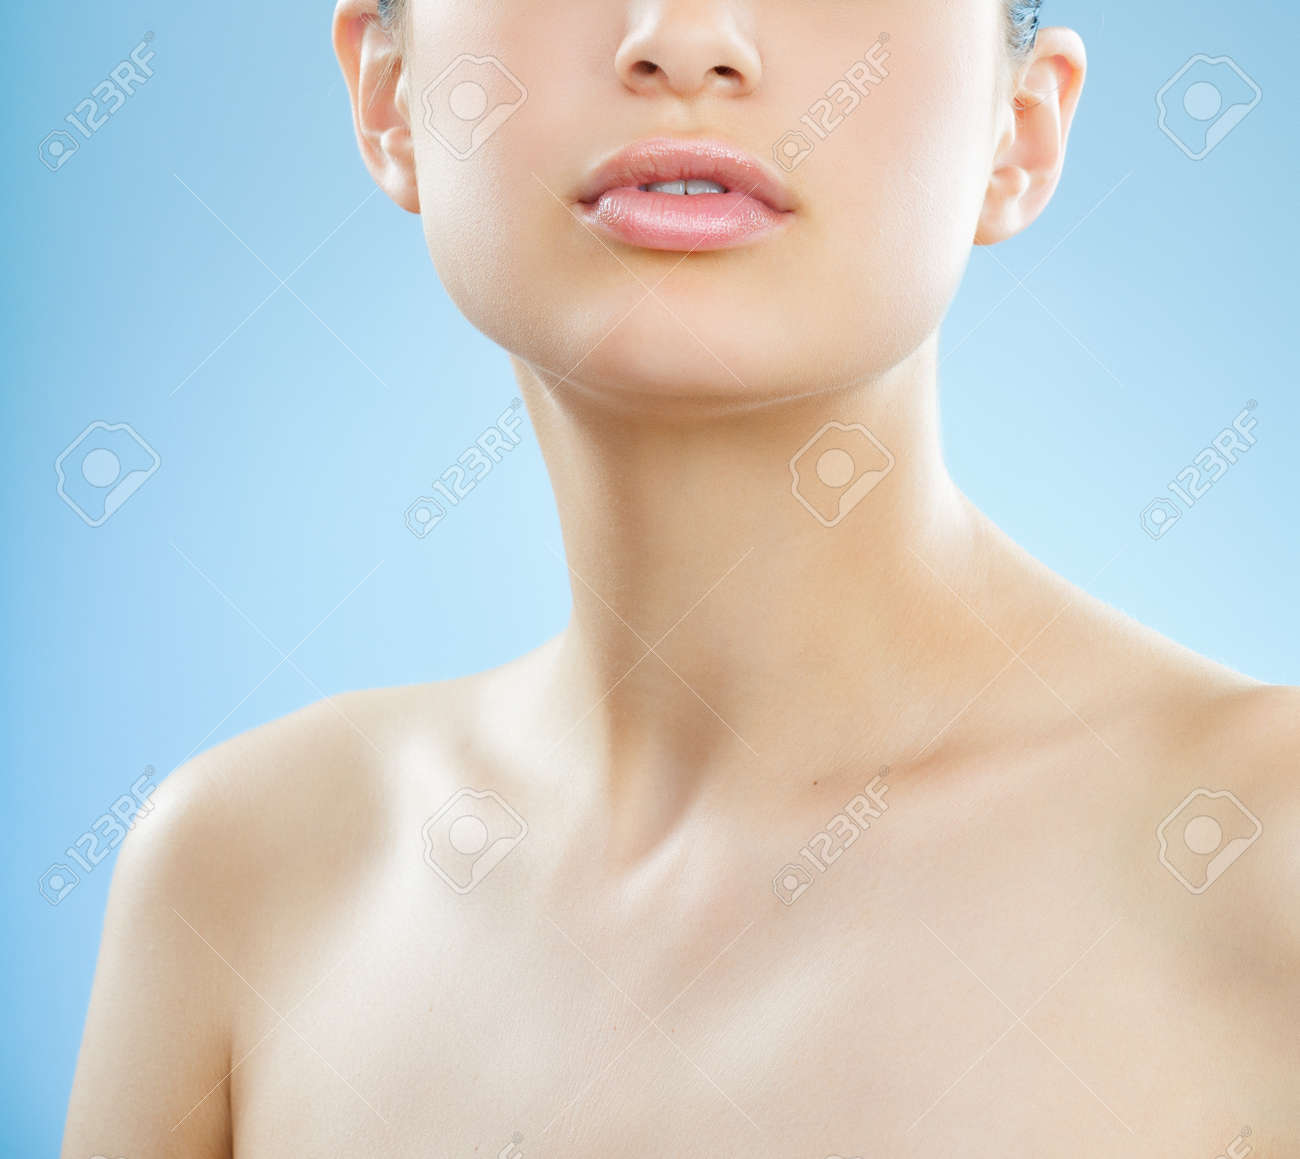 Beautiful young European woman with fresh smooth glowing skin and full lipst over blue background. - 38854282